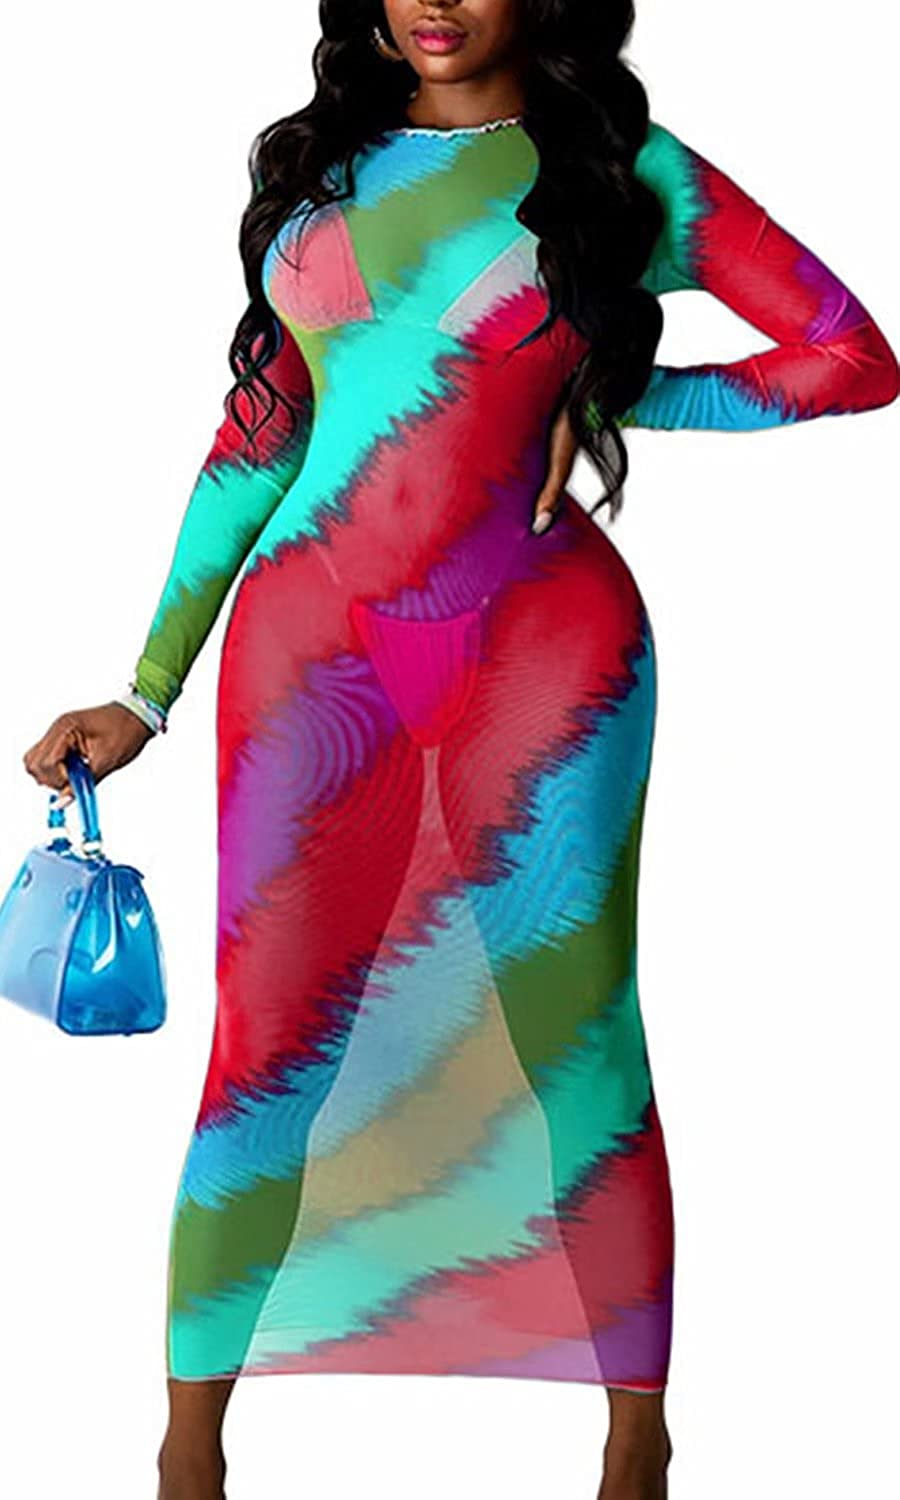 Sprifloral Women Long Sleeve Bodycon Dress - Sexy See Through Sheer Mesh Cover Up Ruched Dress Club Outfits